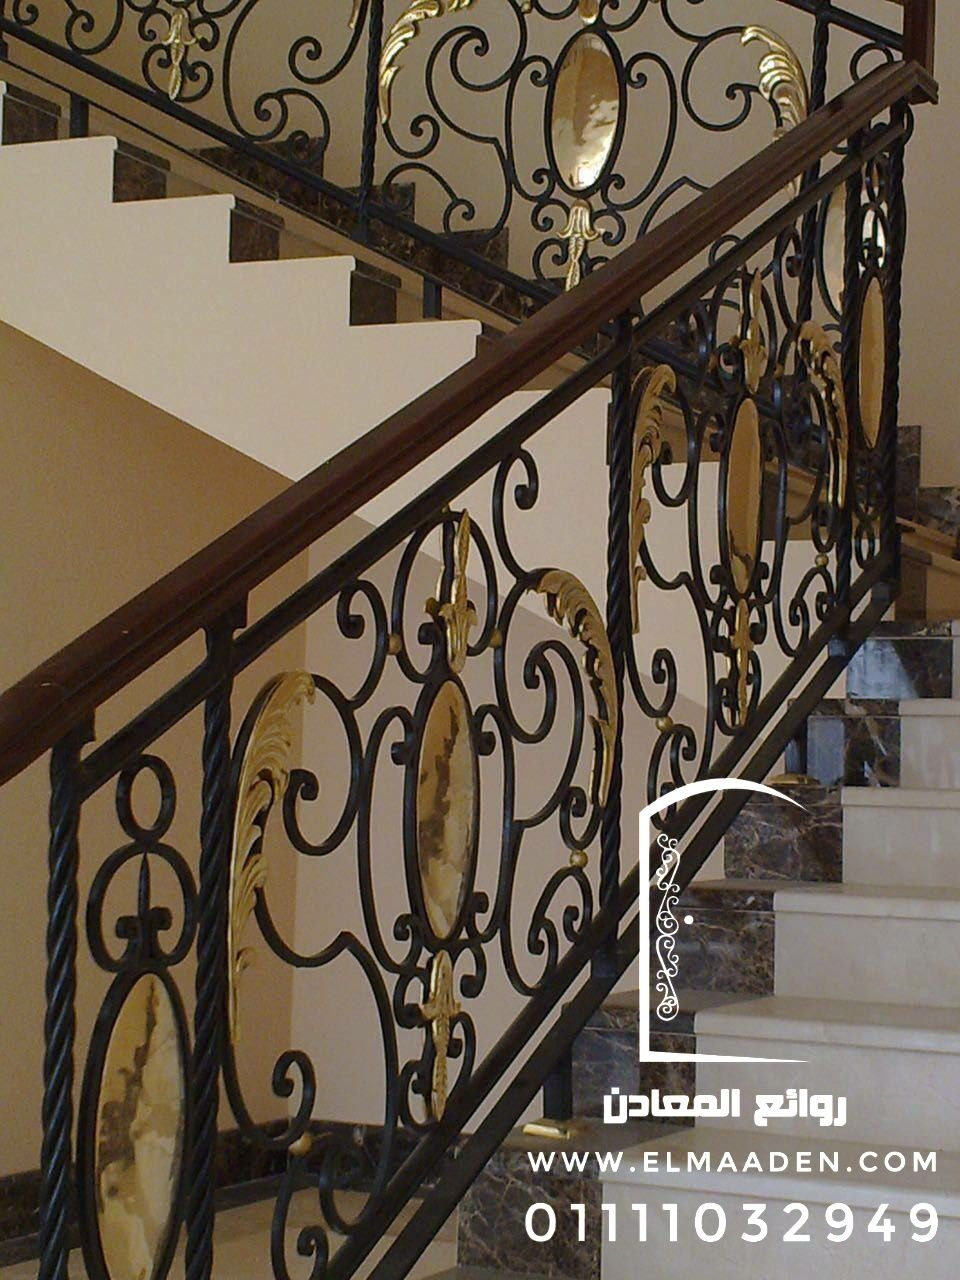 Pin By روائع المعادن On درابزينات حديد مشغول وقص ليزر Decor Stairs Home